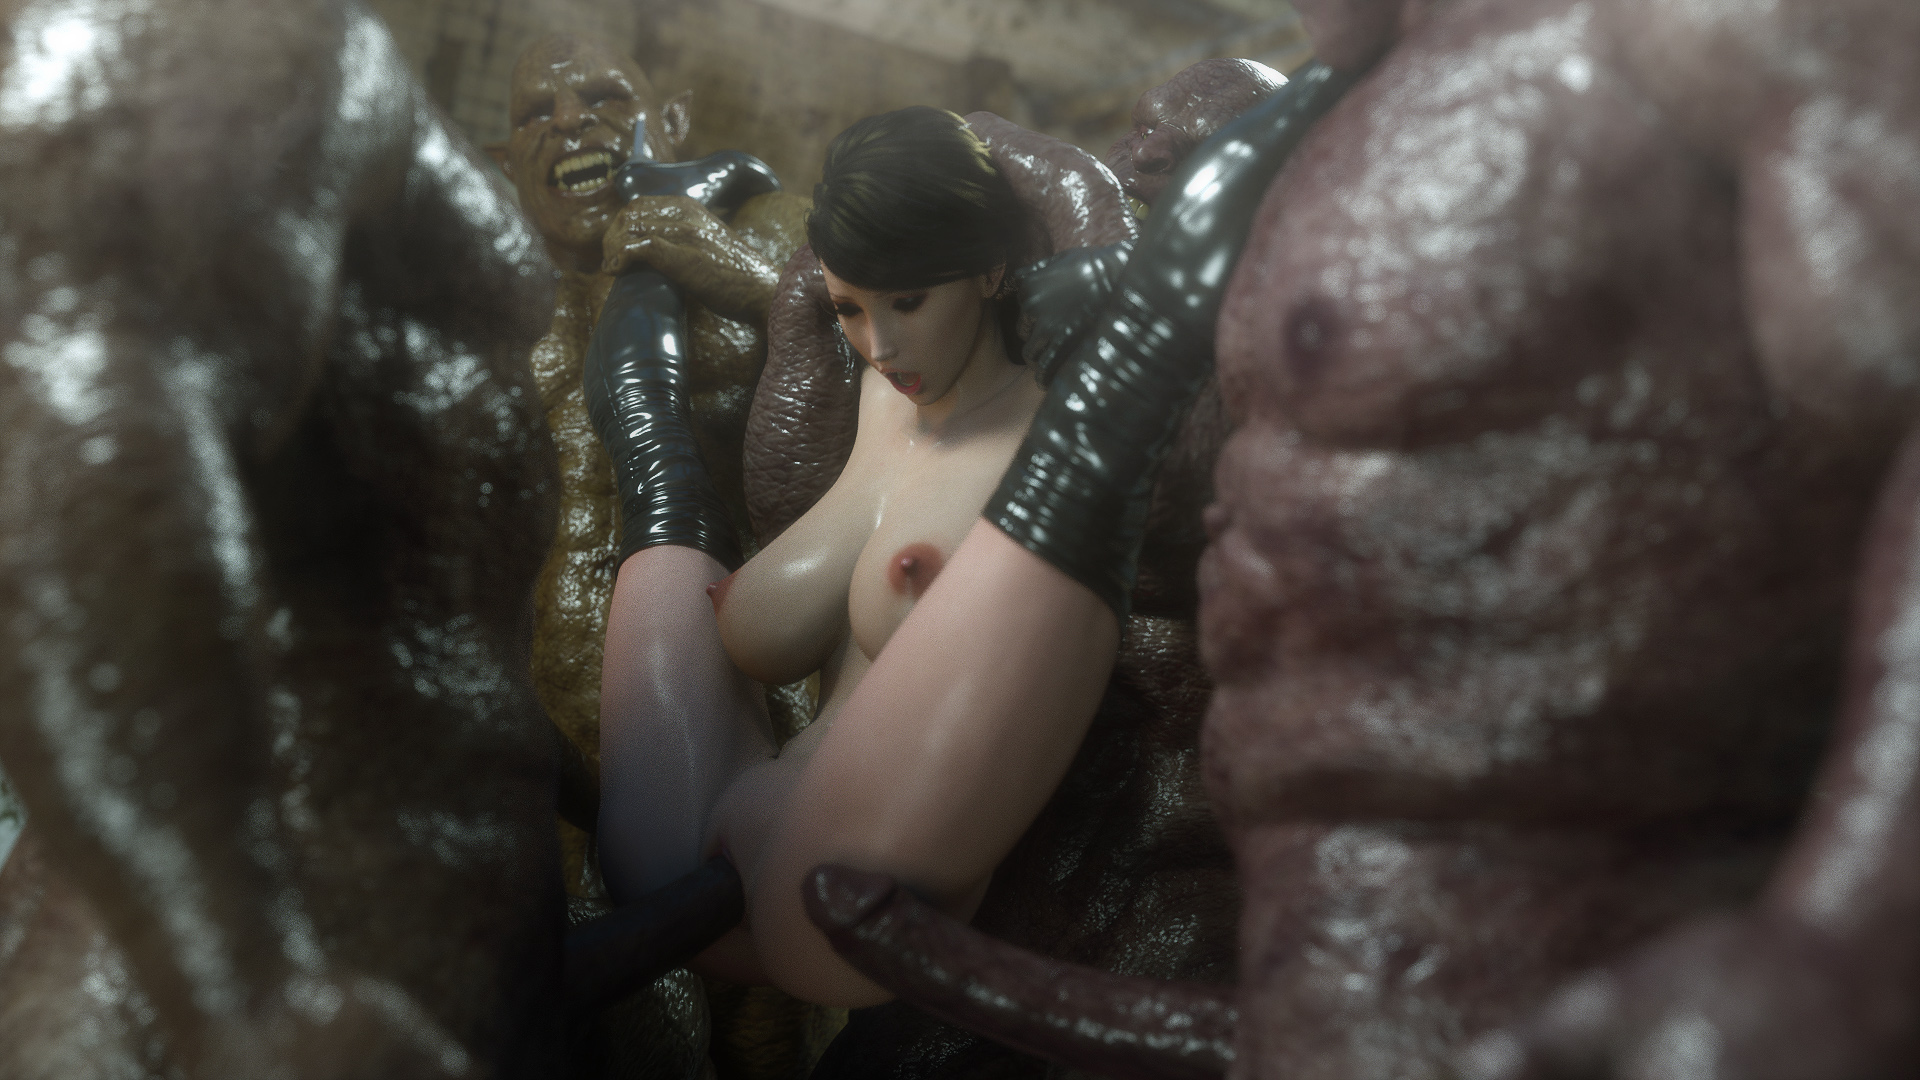 3dsex monster sex film